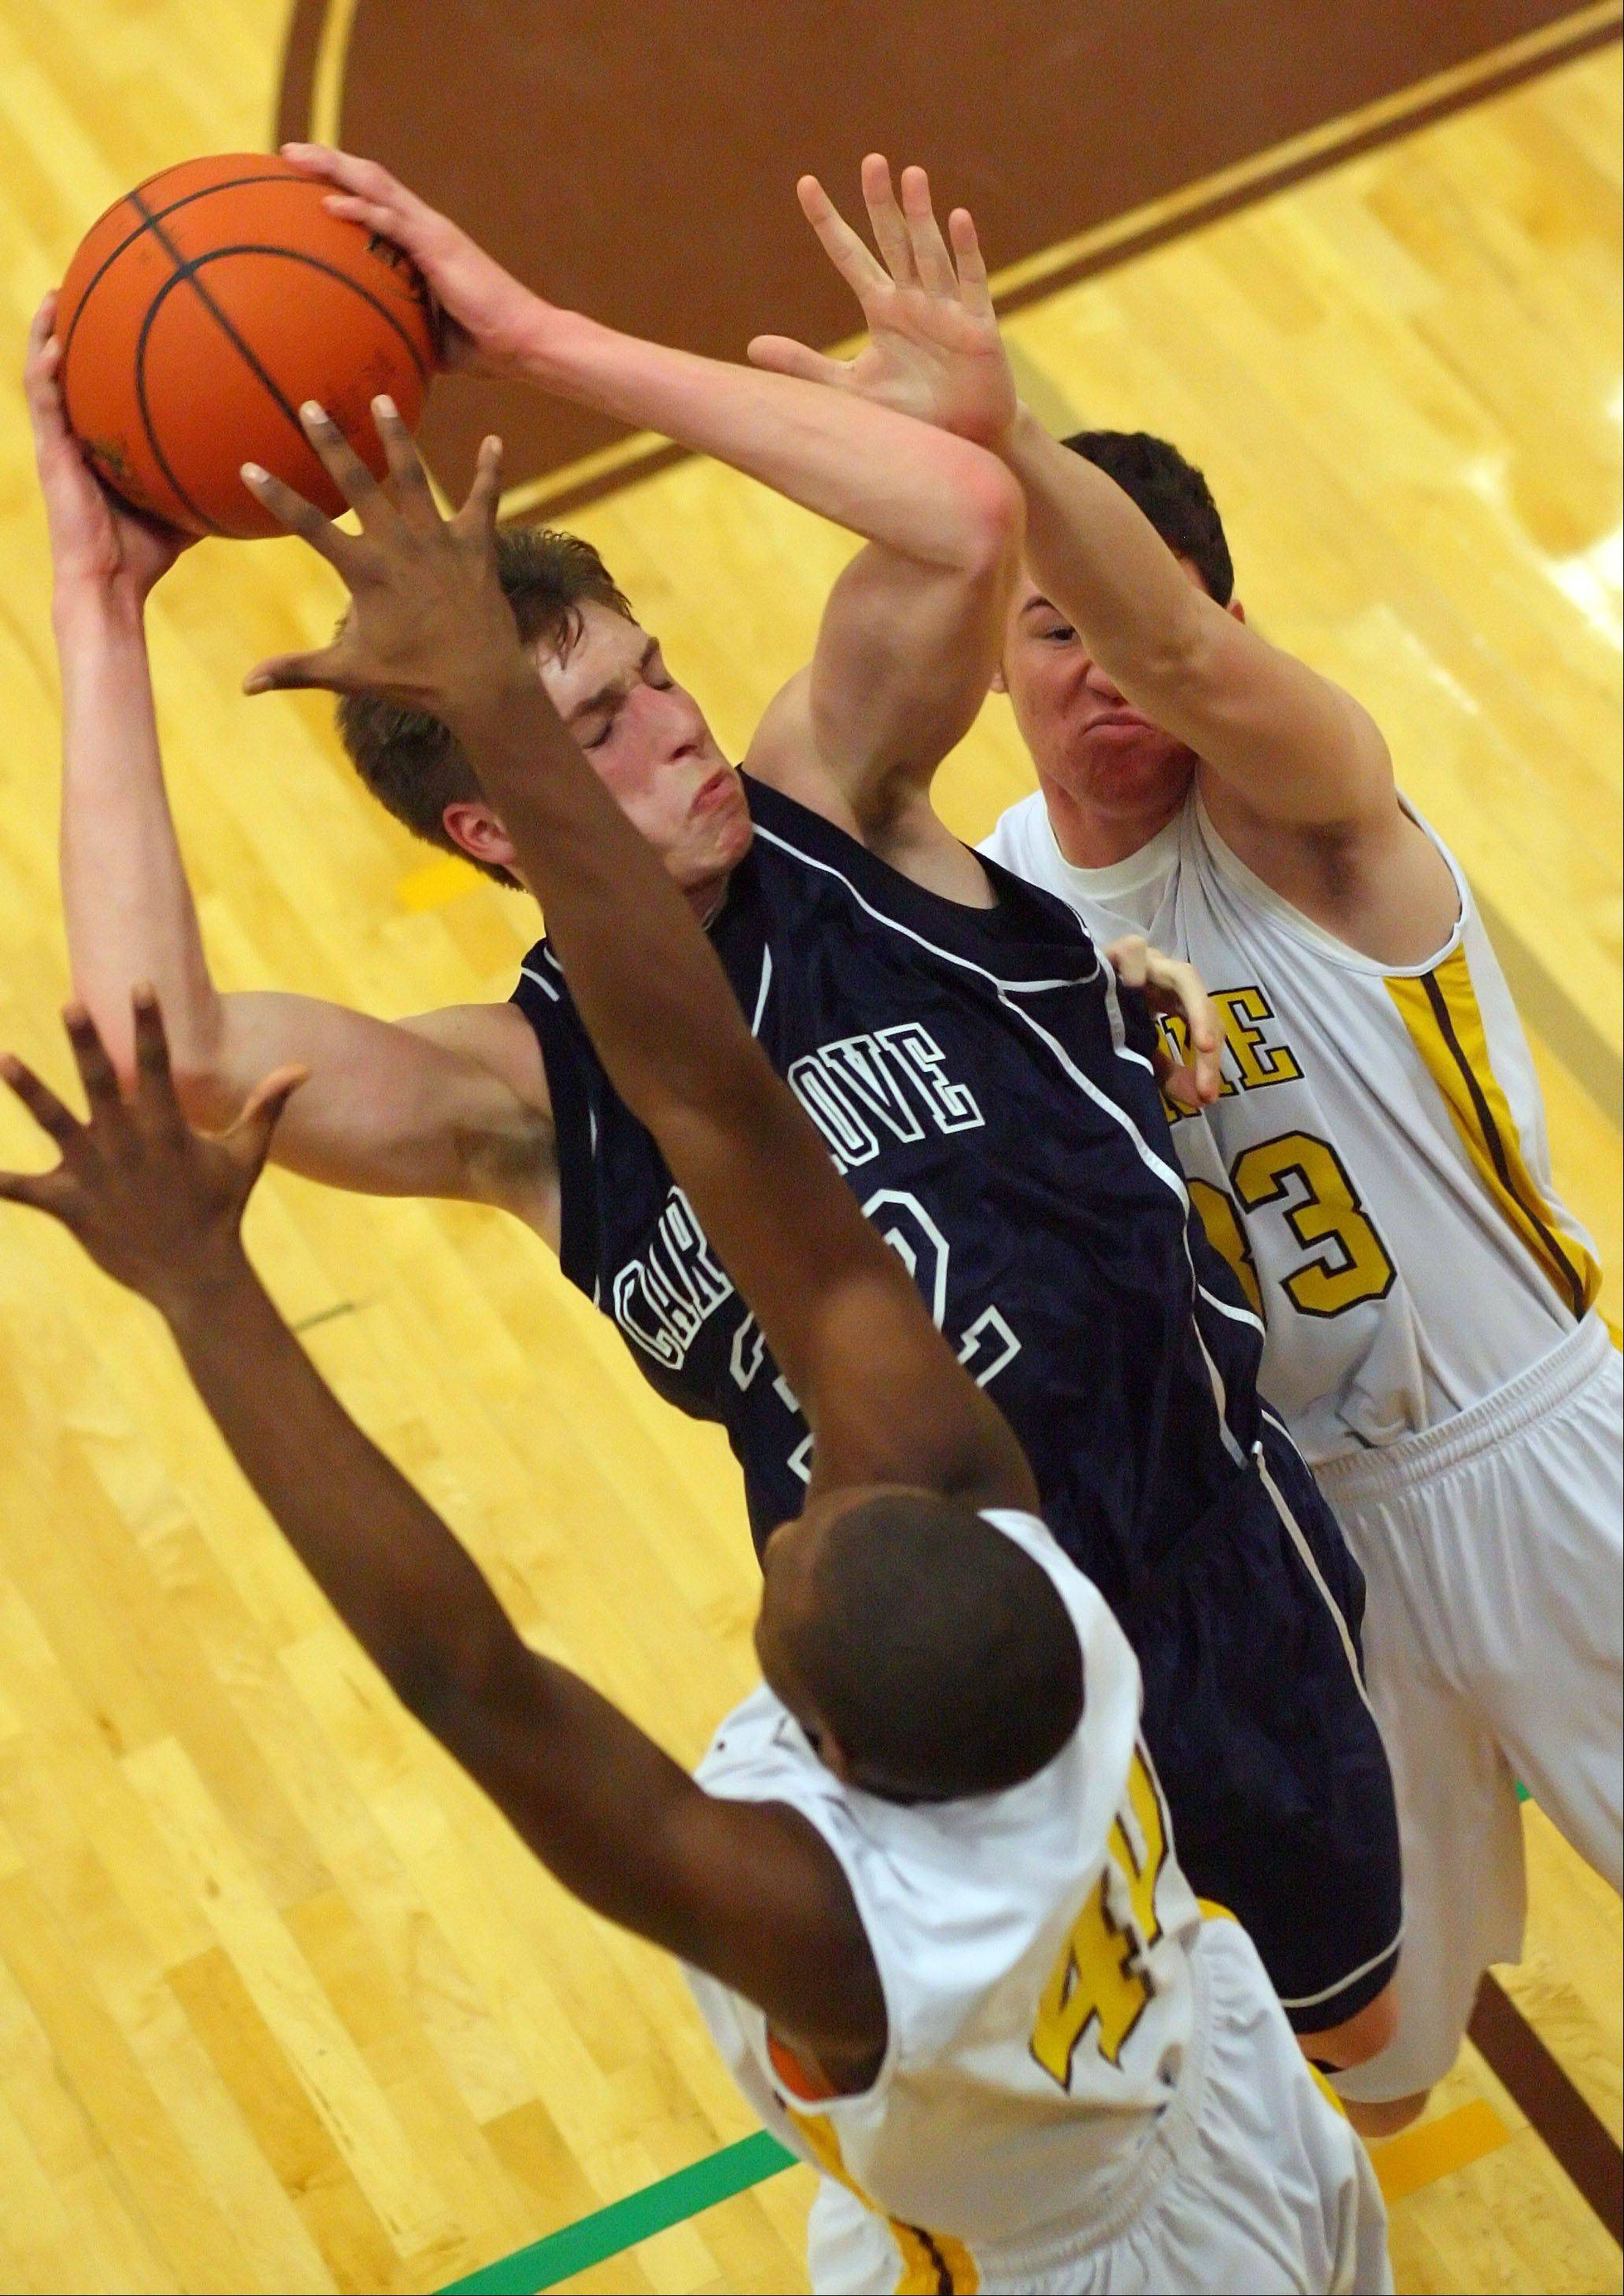 Cary-Grove�s Dean Lee, center, drives on Carmel�s Chris Duff, left, and Matt Kelly on Wednesday night at Carmel.